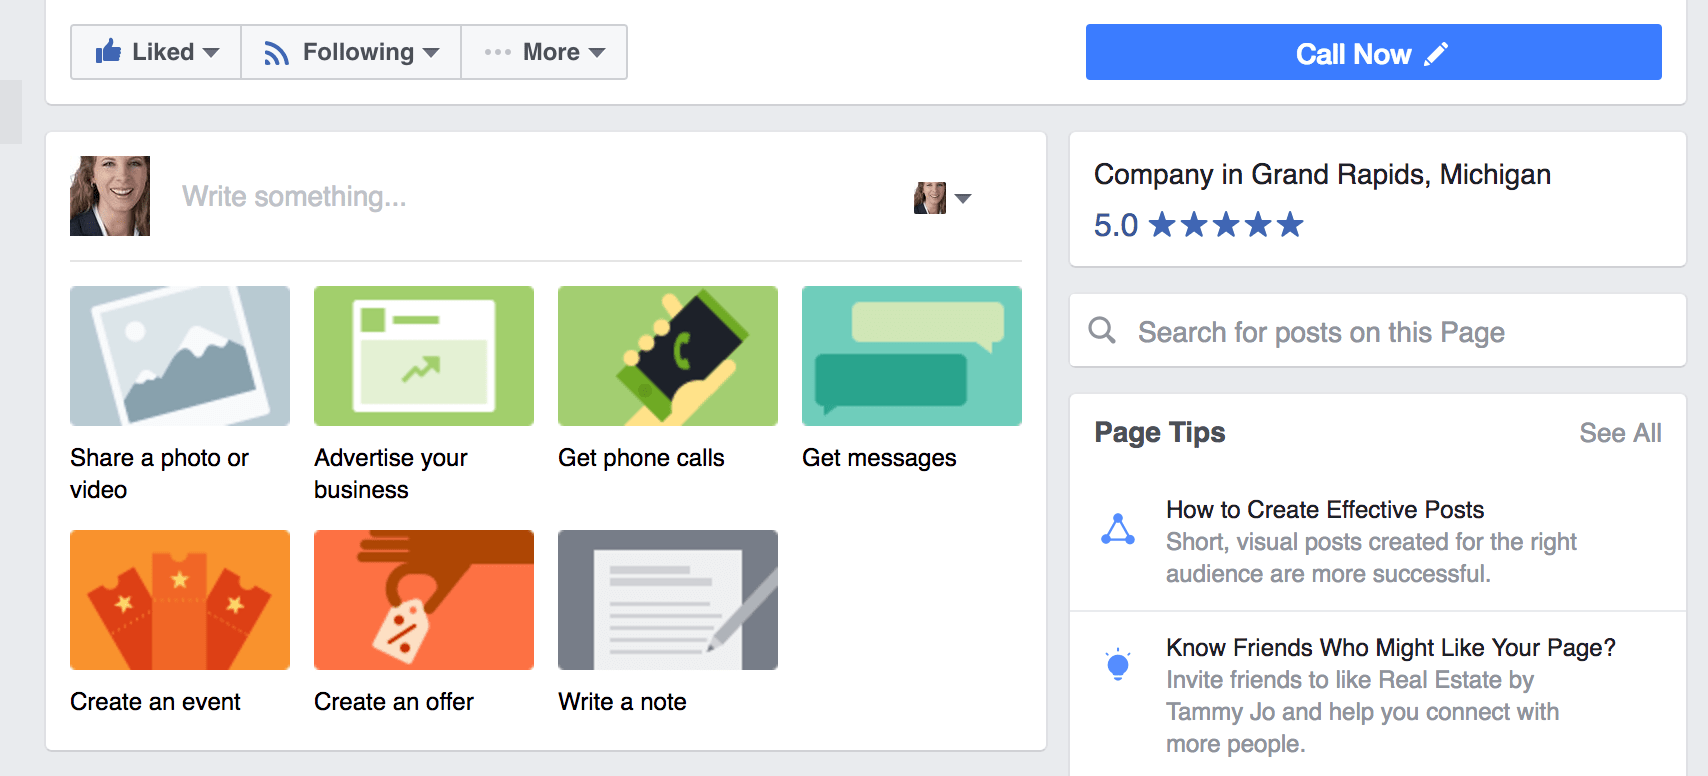 New Post Type Options on Facebook Business Pages